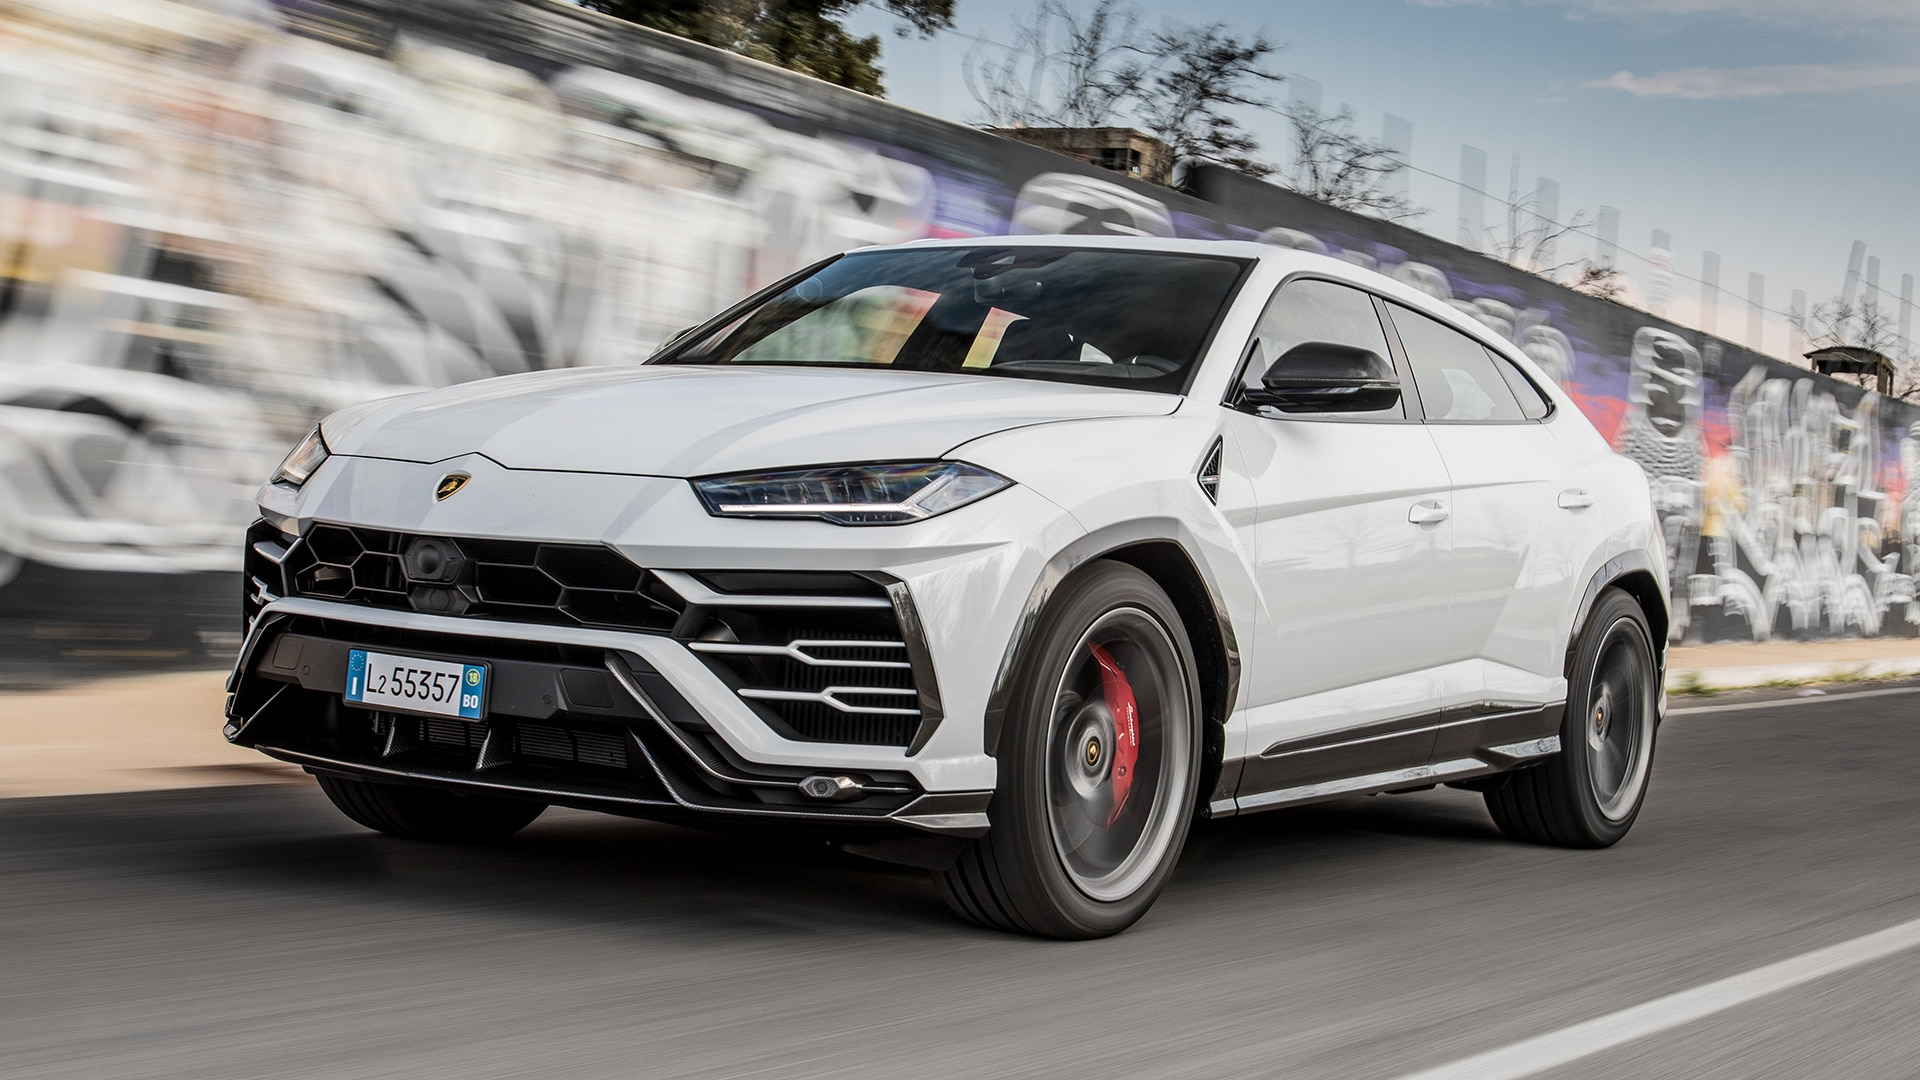 Lambo S U S Ceo On The Urus Suv As A Real Lamborghini